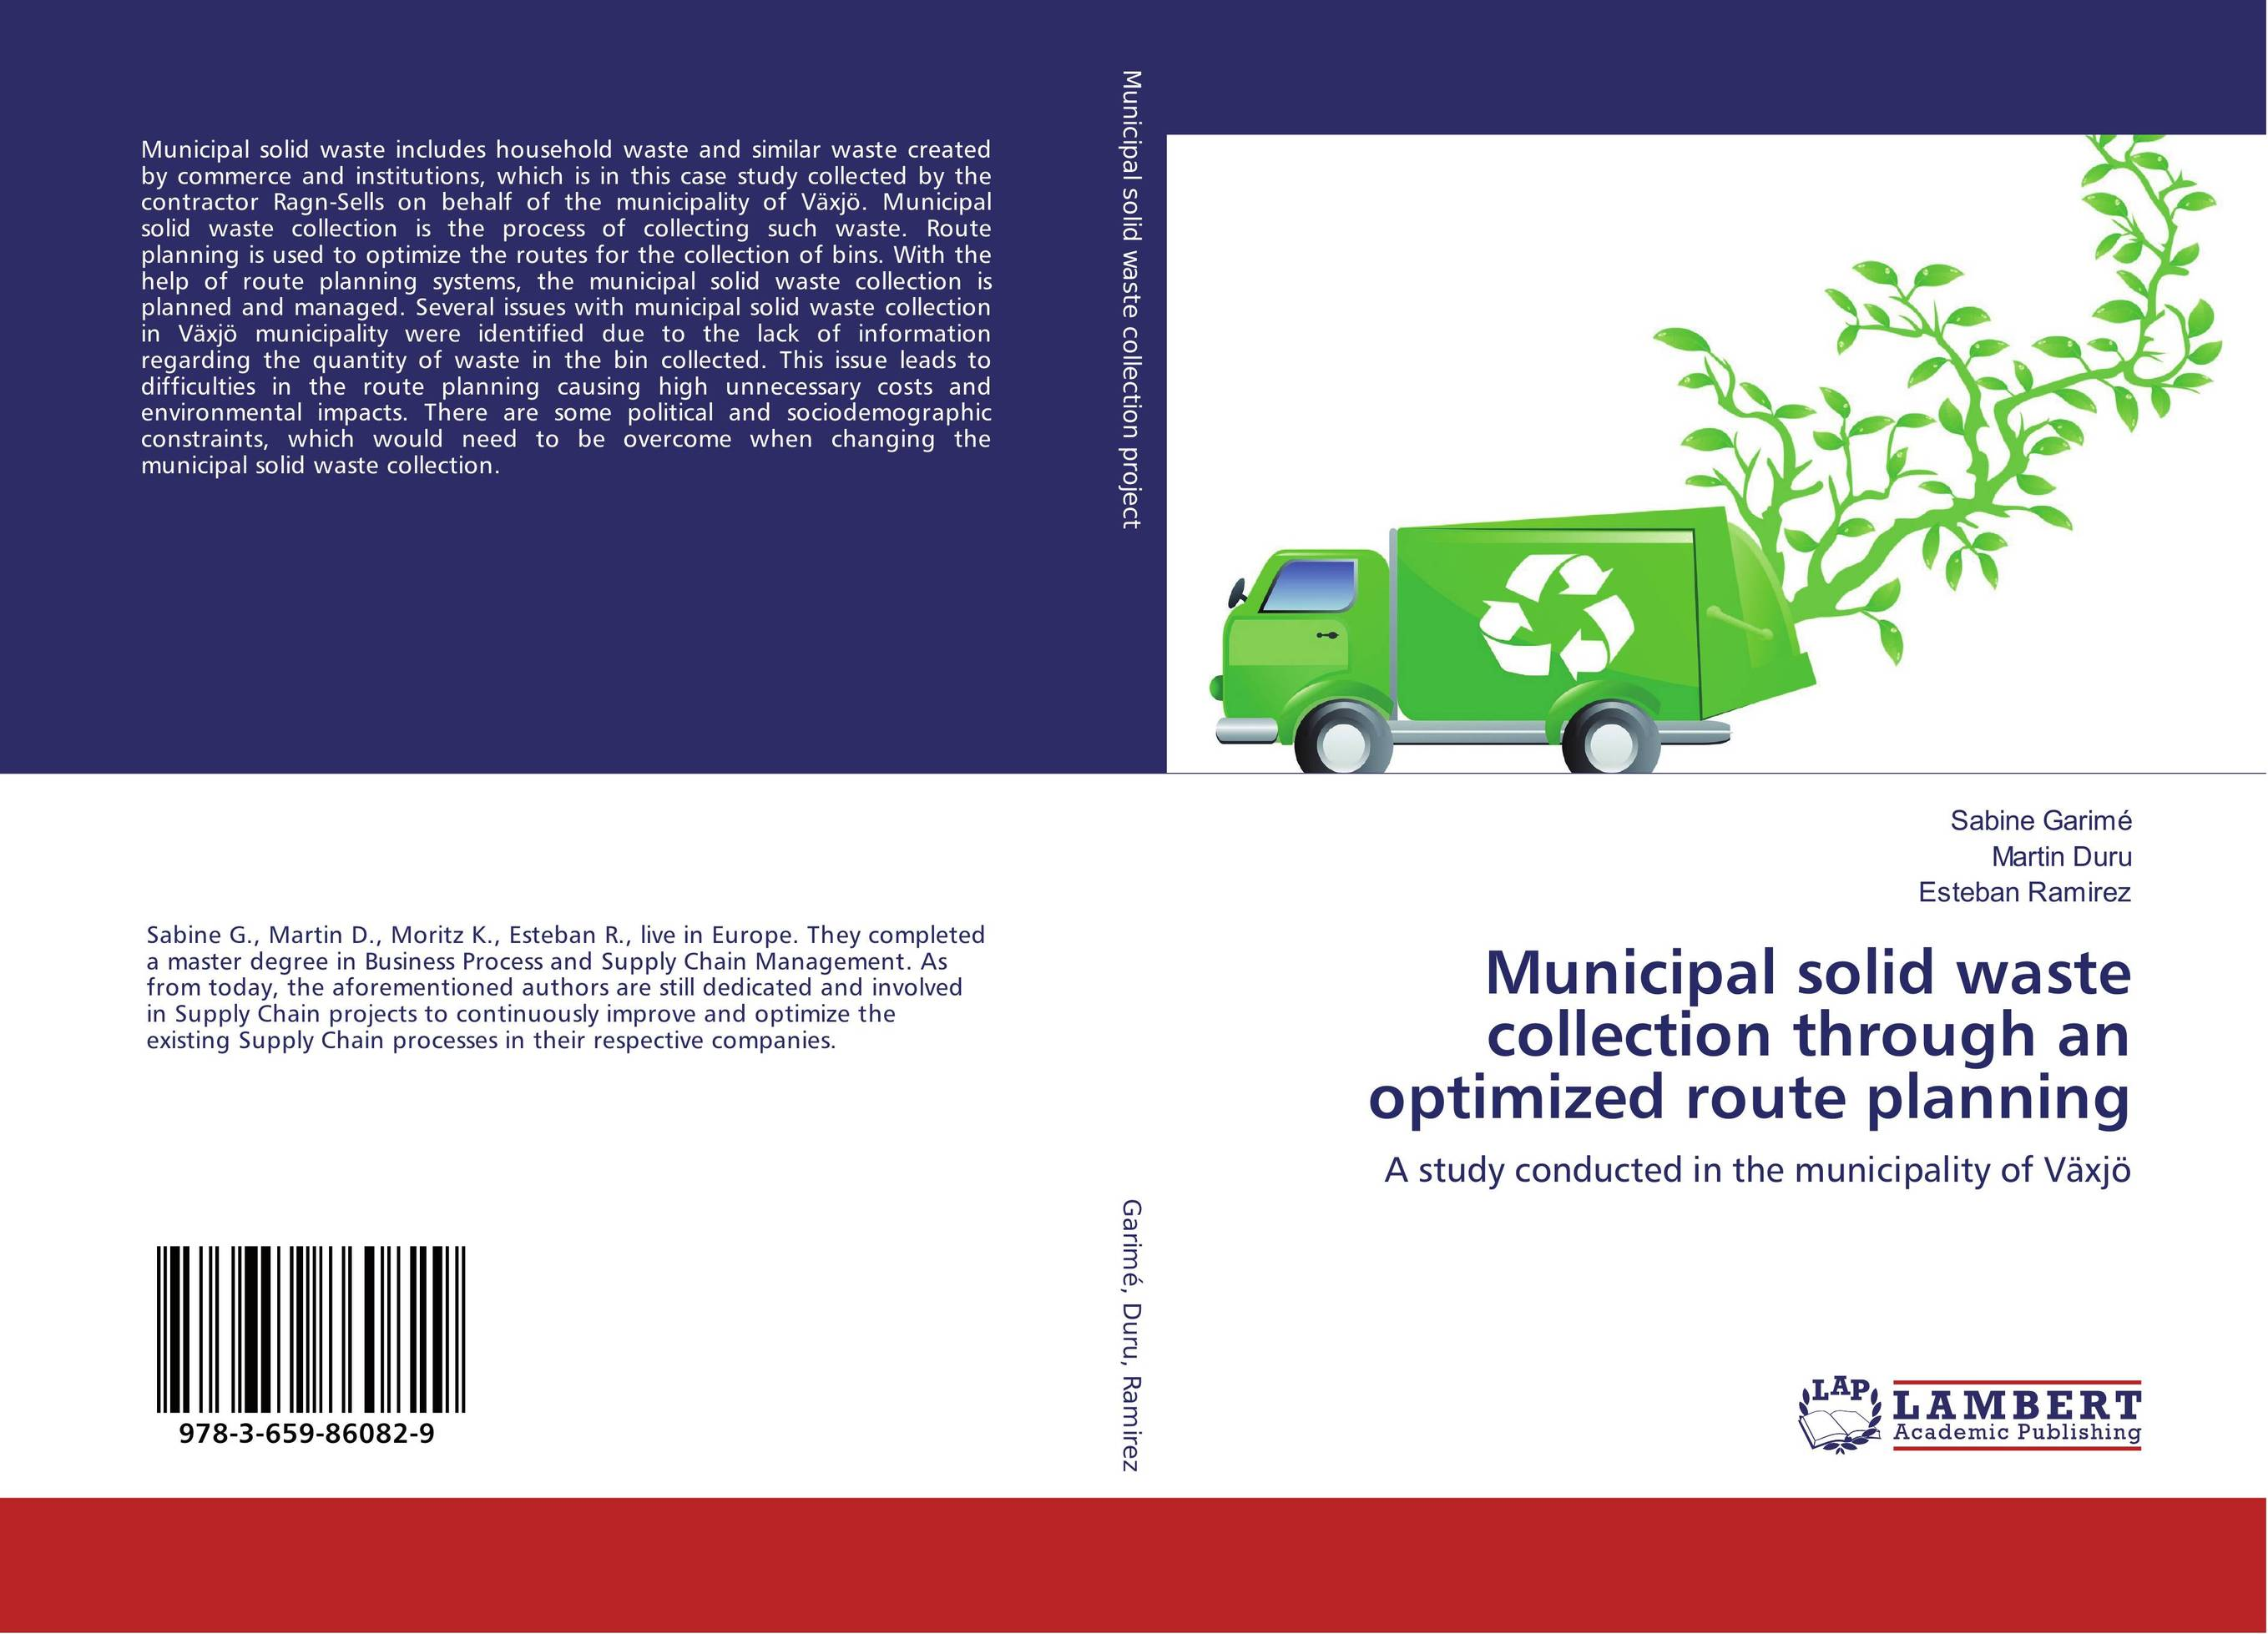 Municipal solid waste collection through an optimized route planning optimized–motion planning